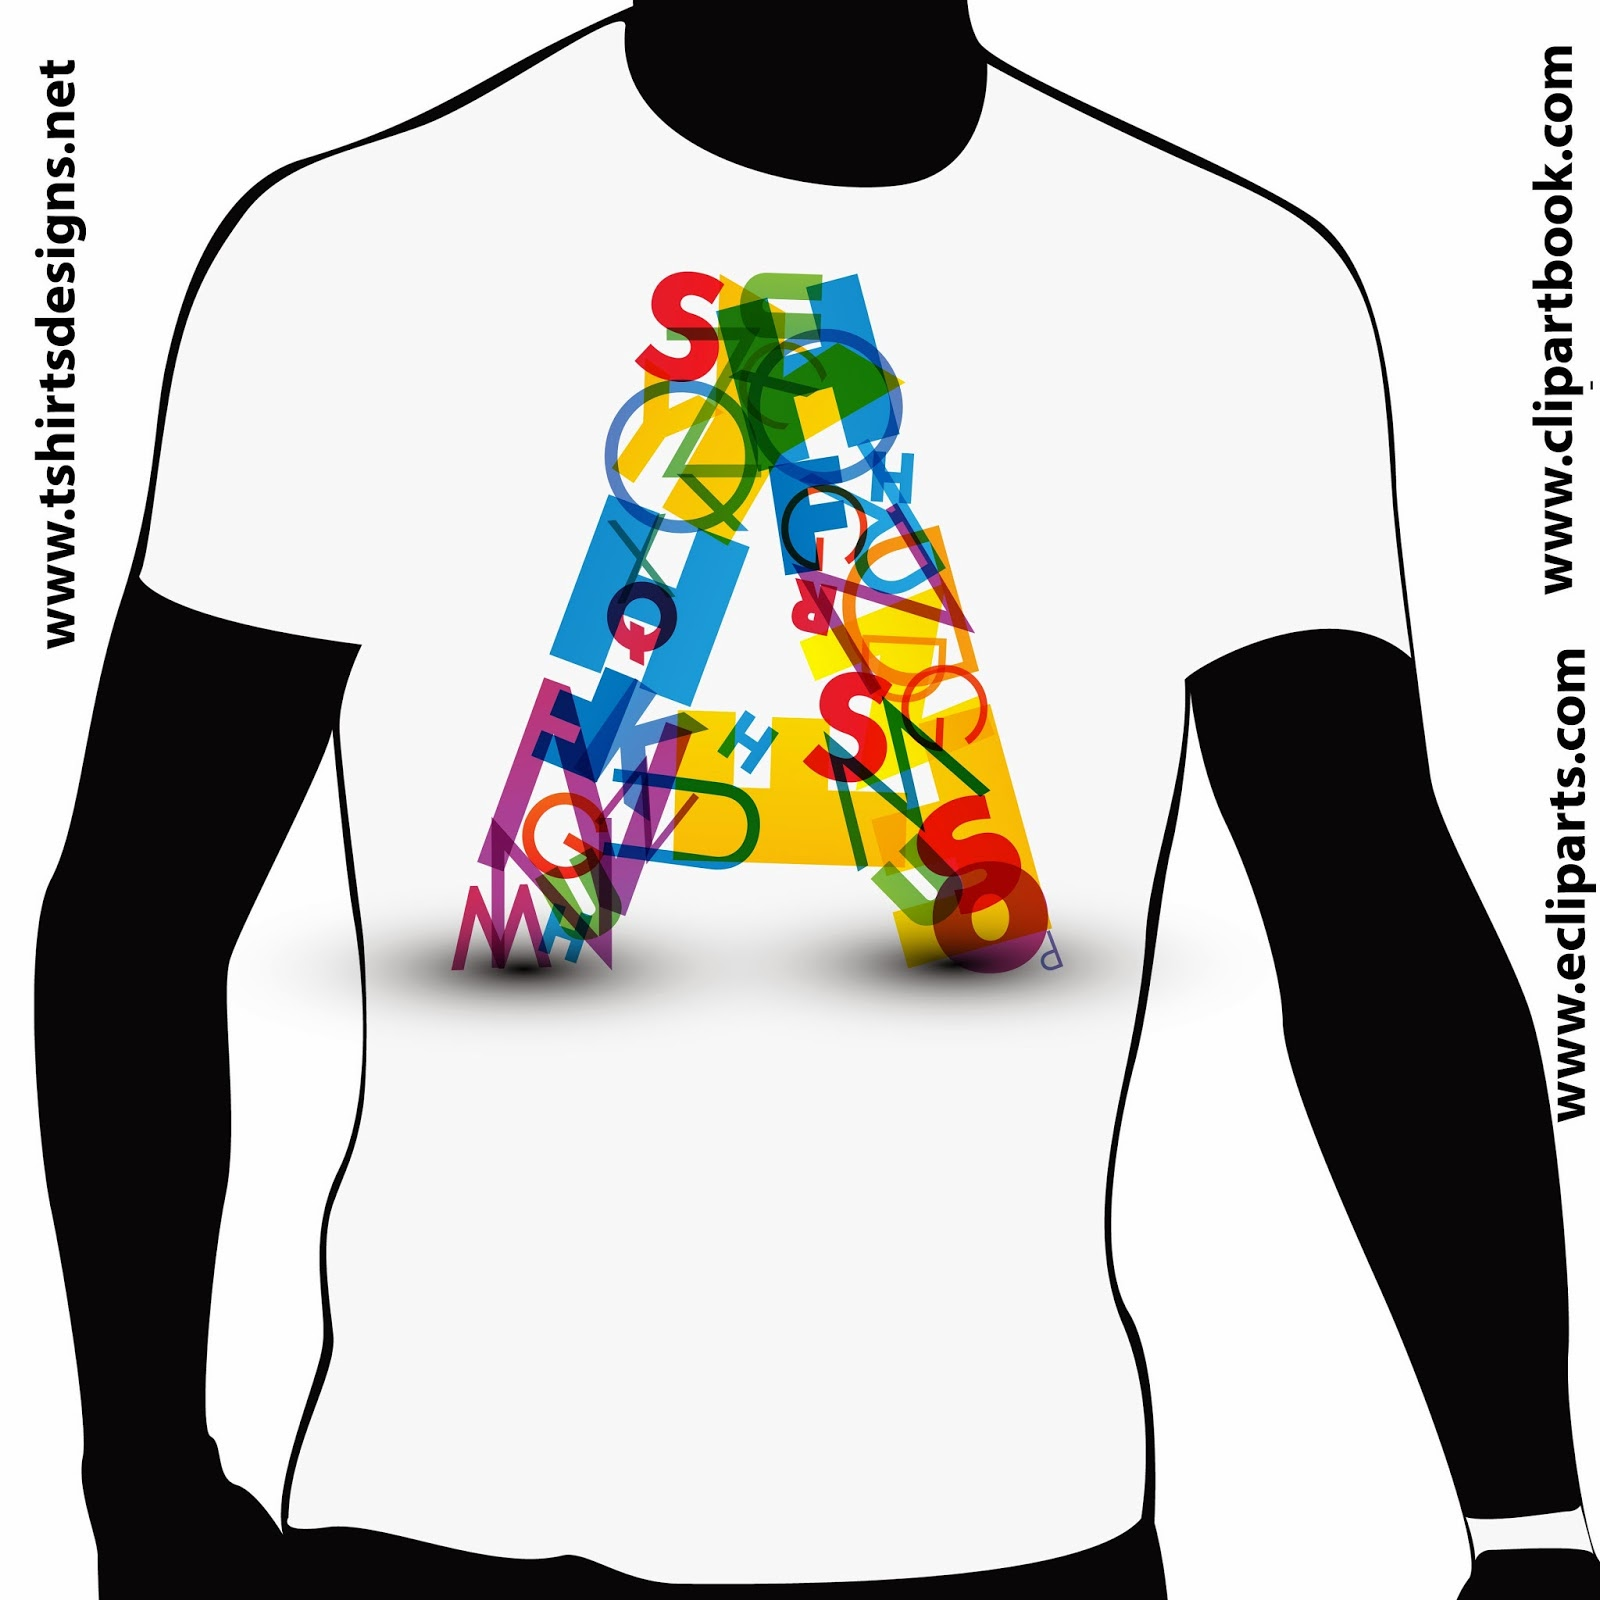 1000 Images About T Shirt On Pinterest Graphic Tees